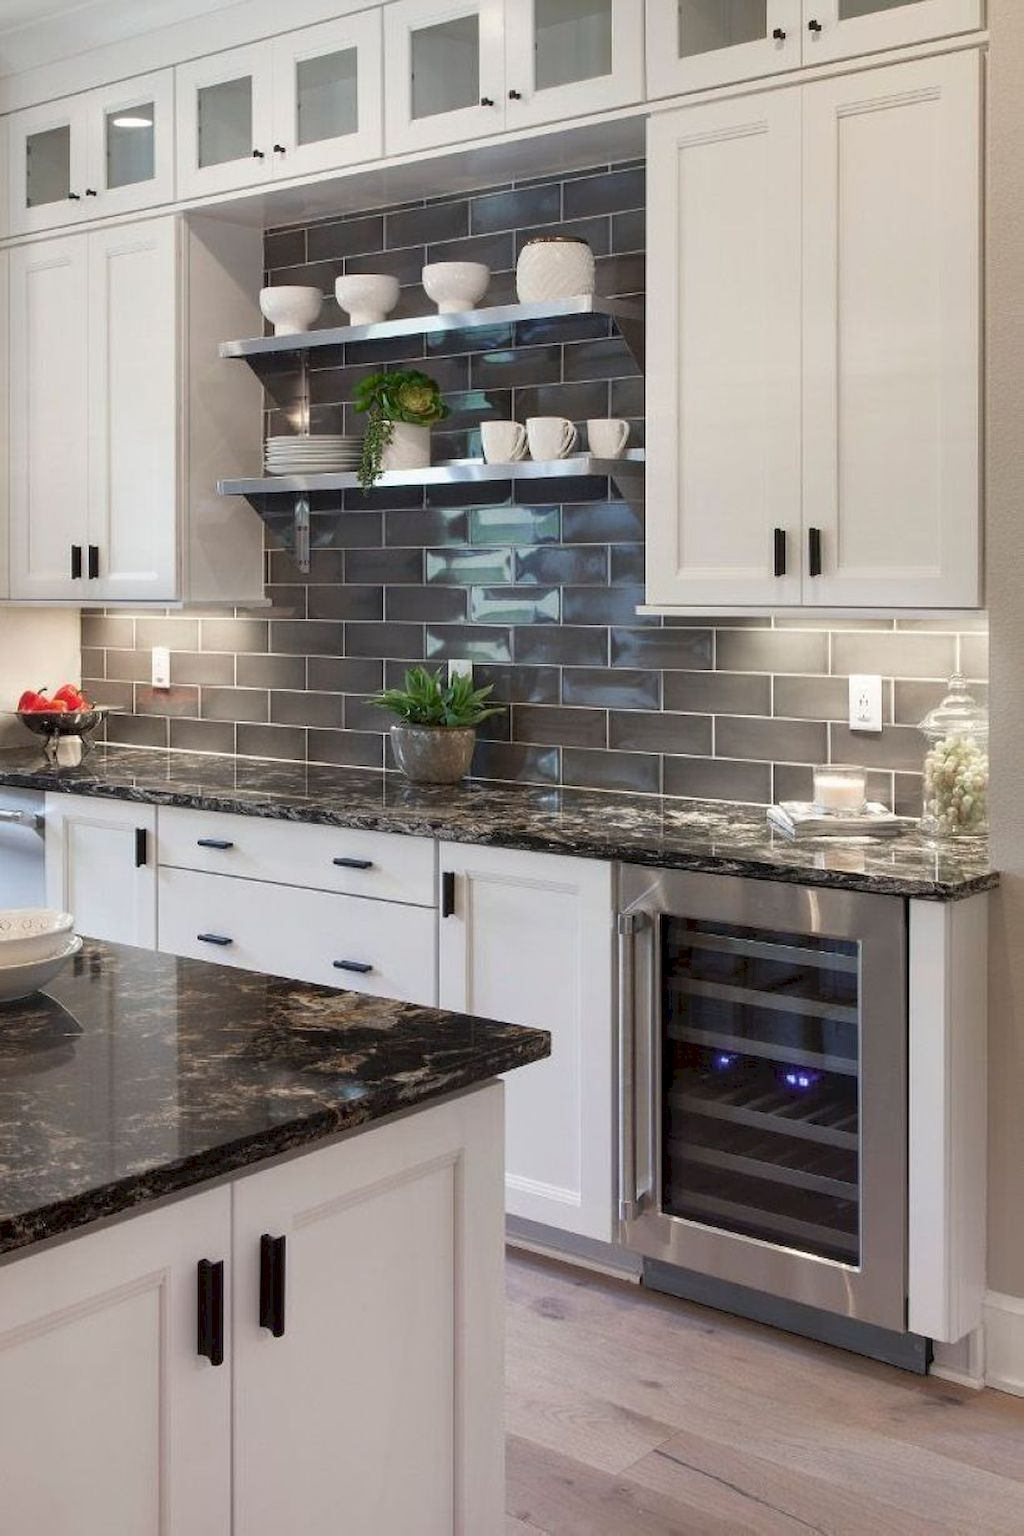 Fabulous Kitchen Backsplash Ideas For a Clean Culinary Experience – Home to Z